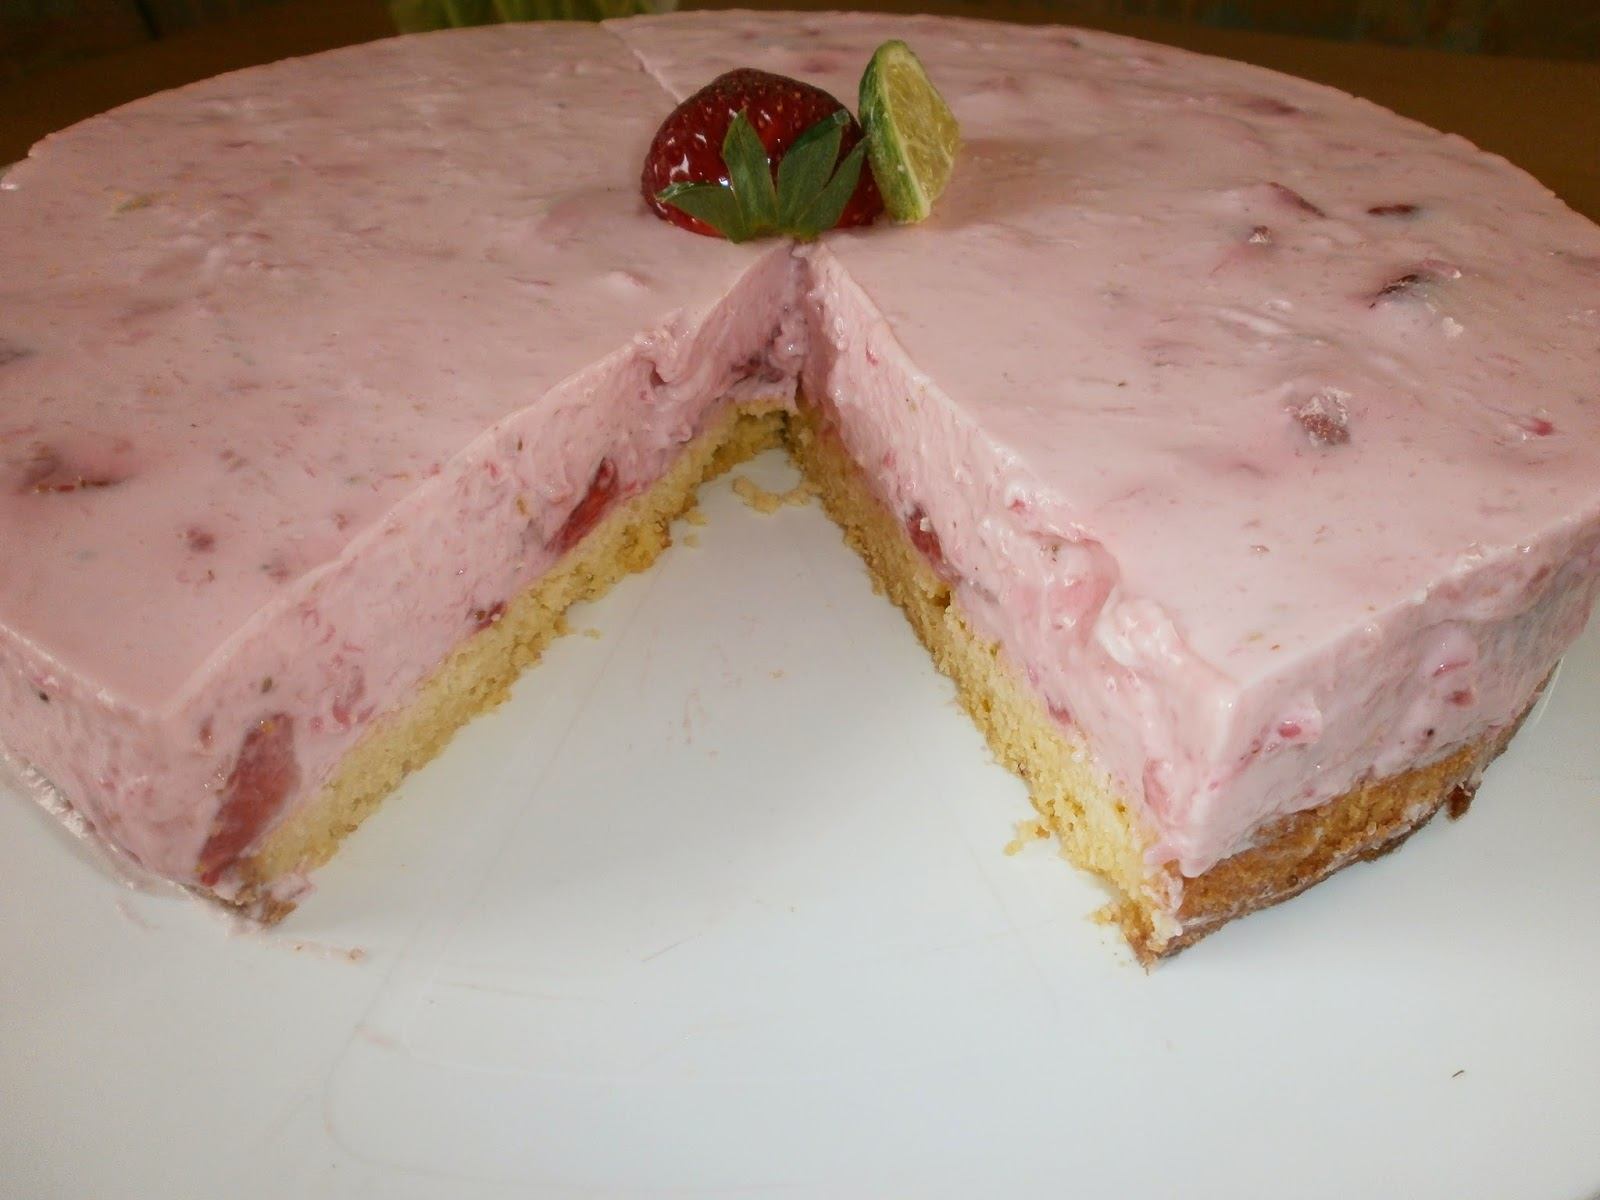 Melly S Backstube Limetten Erdbeer Quark Torte Low Carb